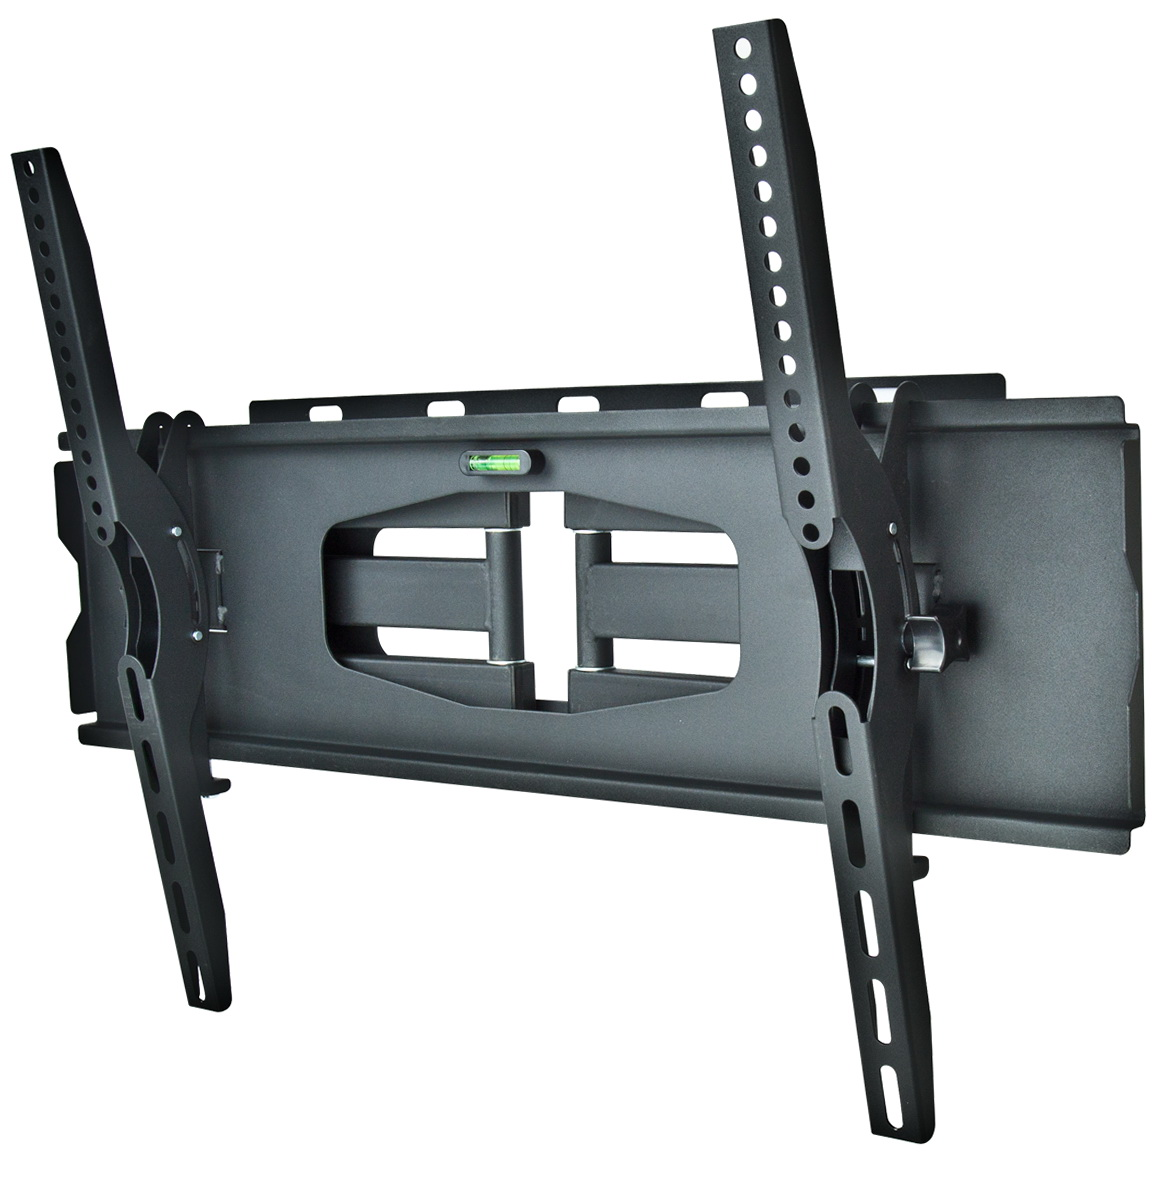 Wall Mount Component Shelf Best Buy